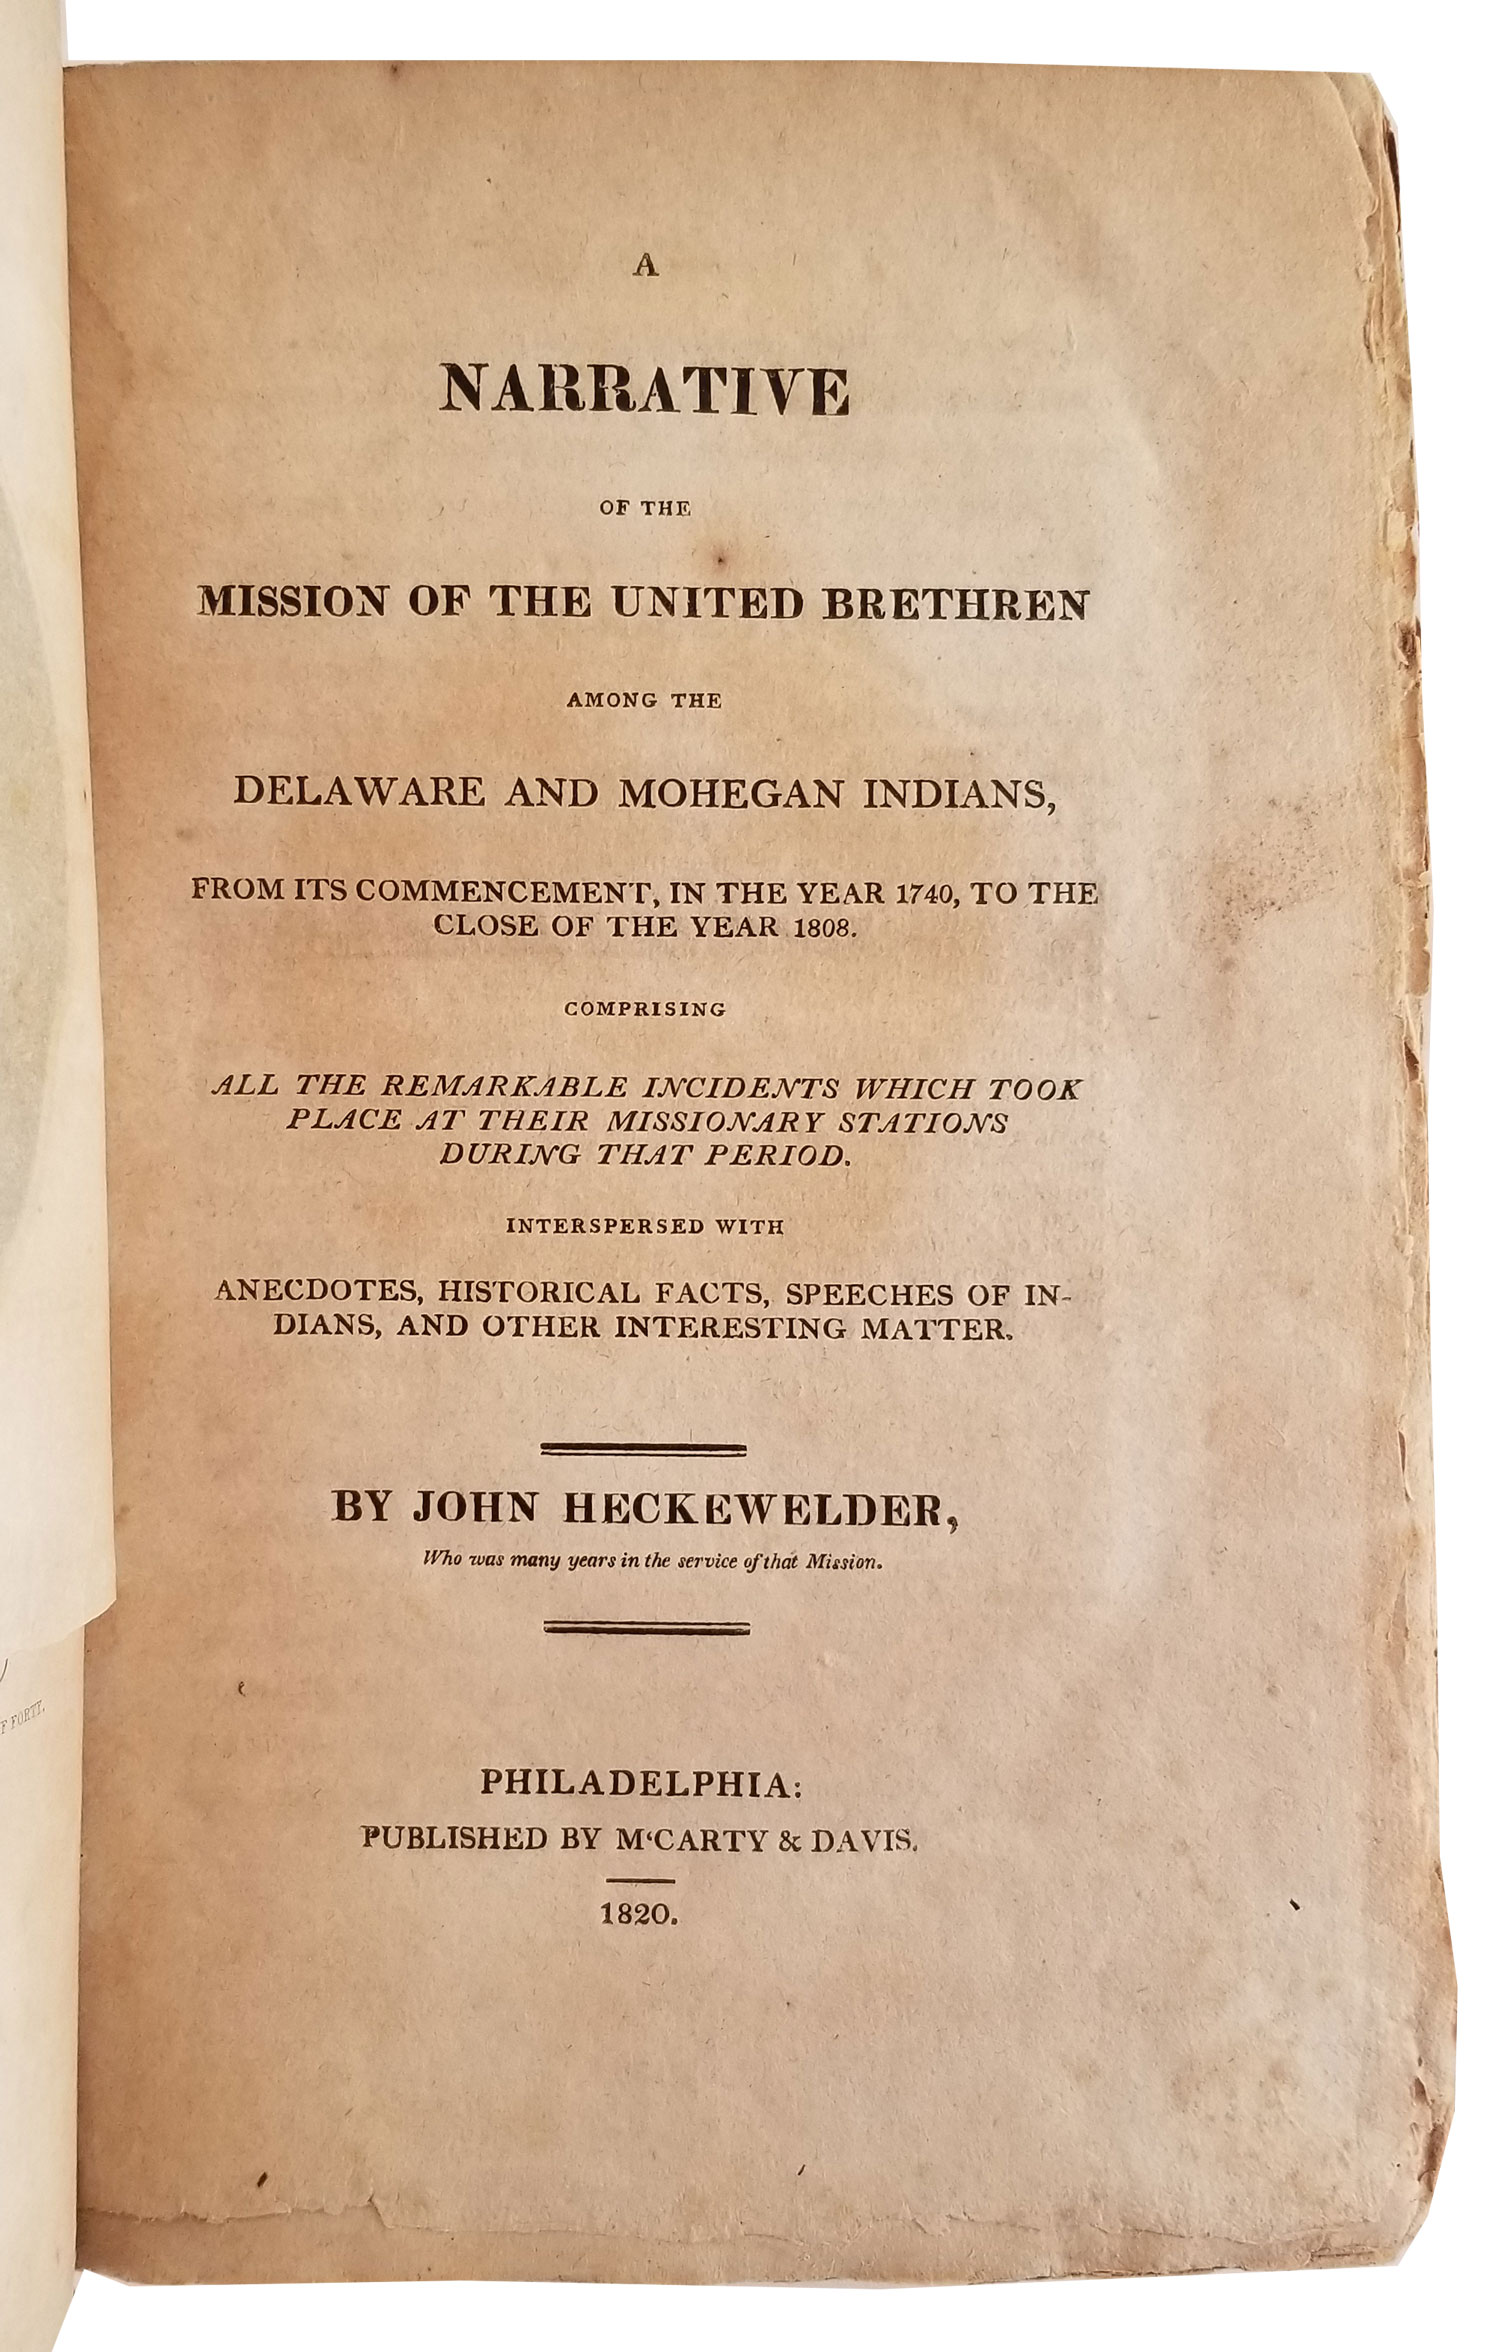 Image for A NARRATIVE OF THE MISSION OF THE UNITED BRETHREN AMONG THE DELAWARE AND MOHEGAN INDIANS